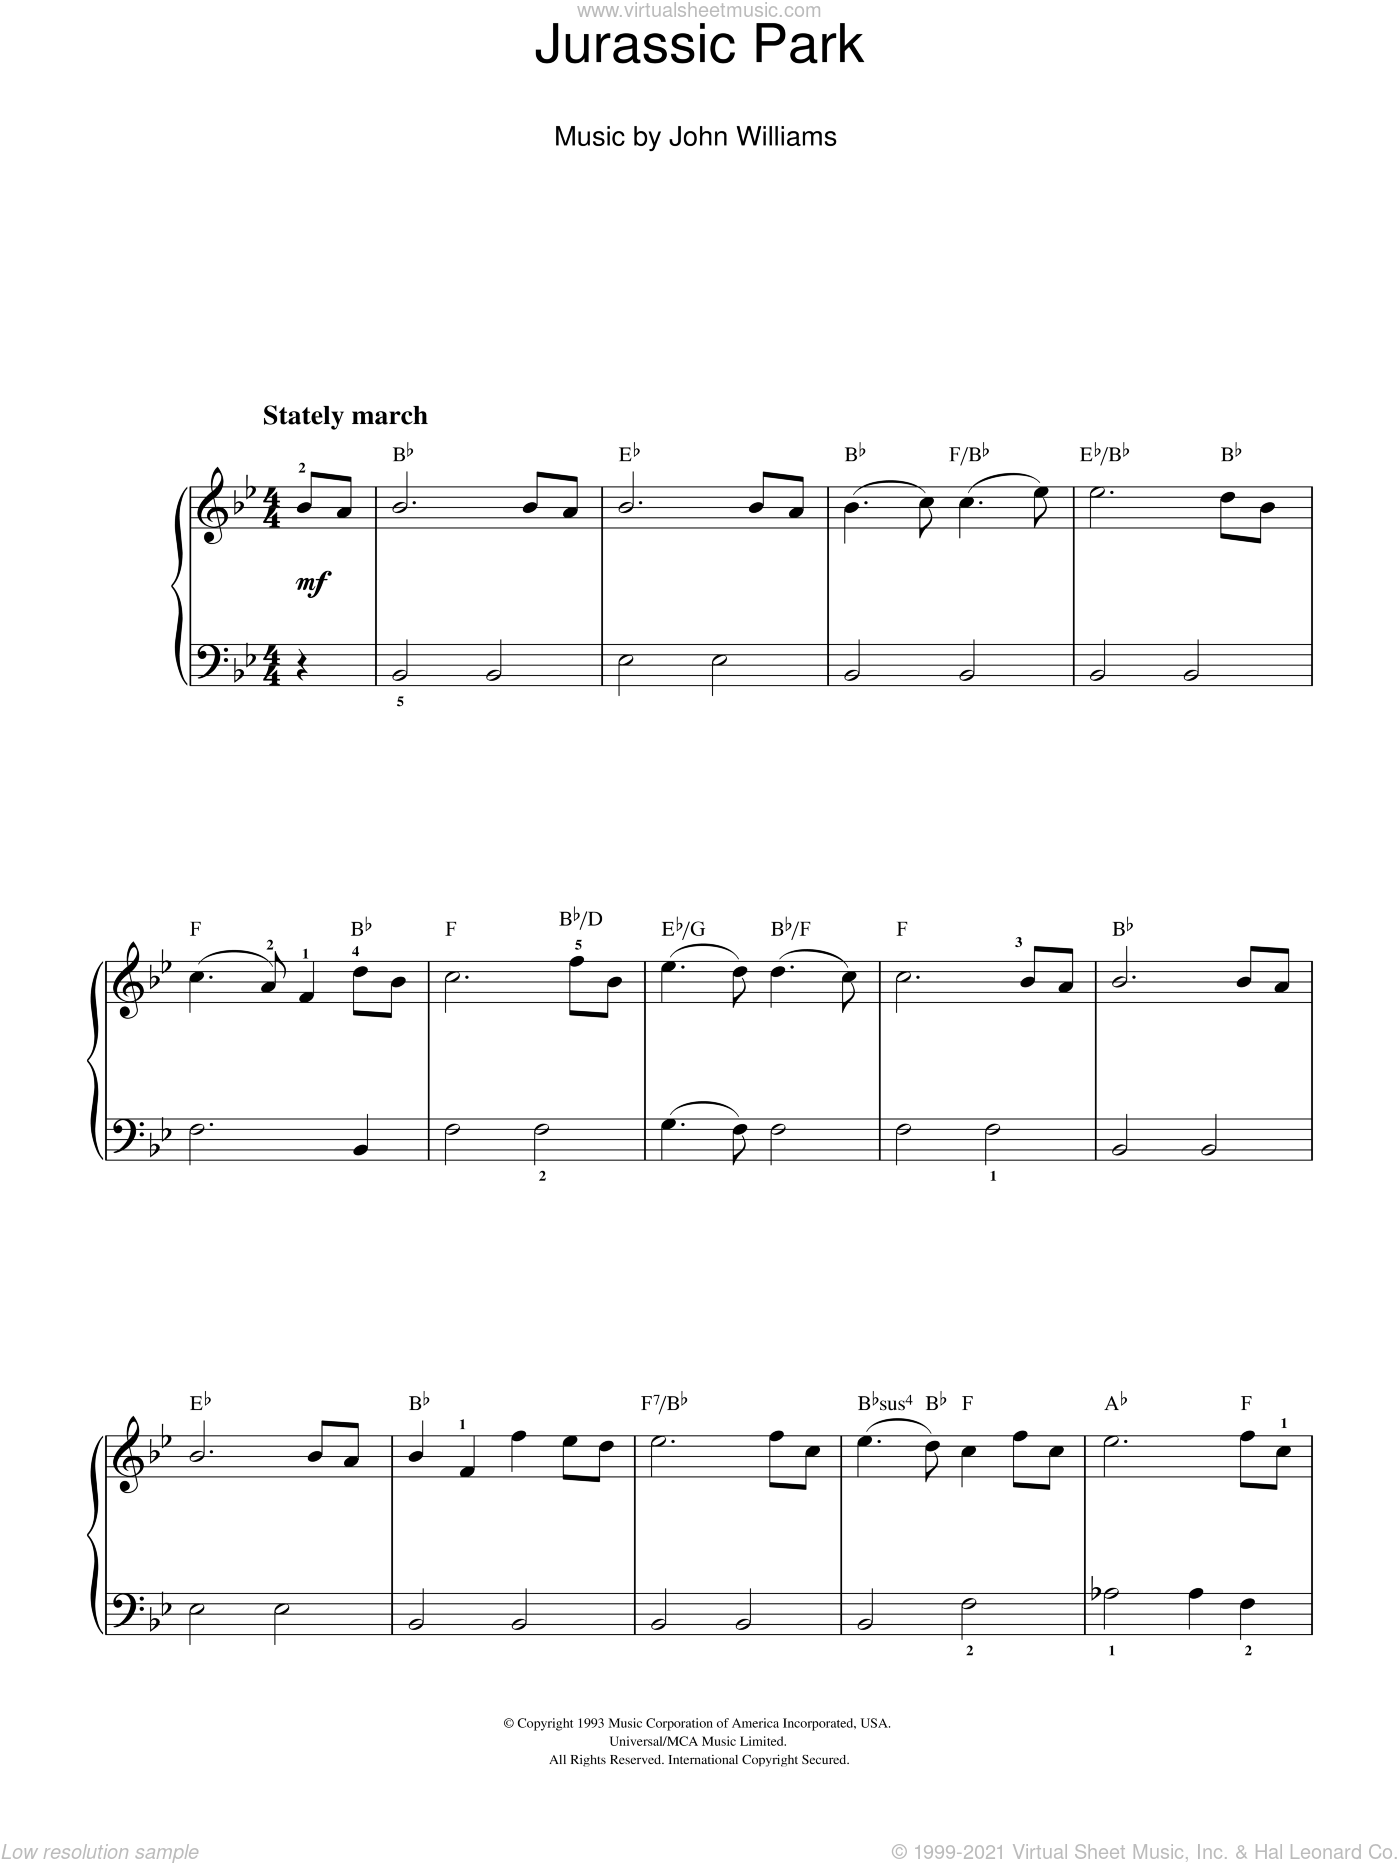 Jurassic Park (Theme) sheet music for piano solo by John Williams, easy skill level